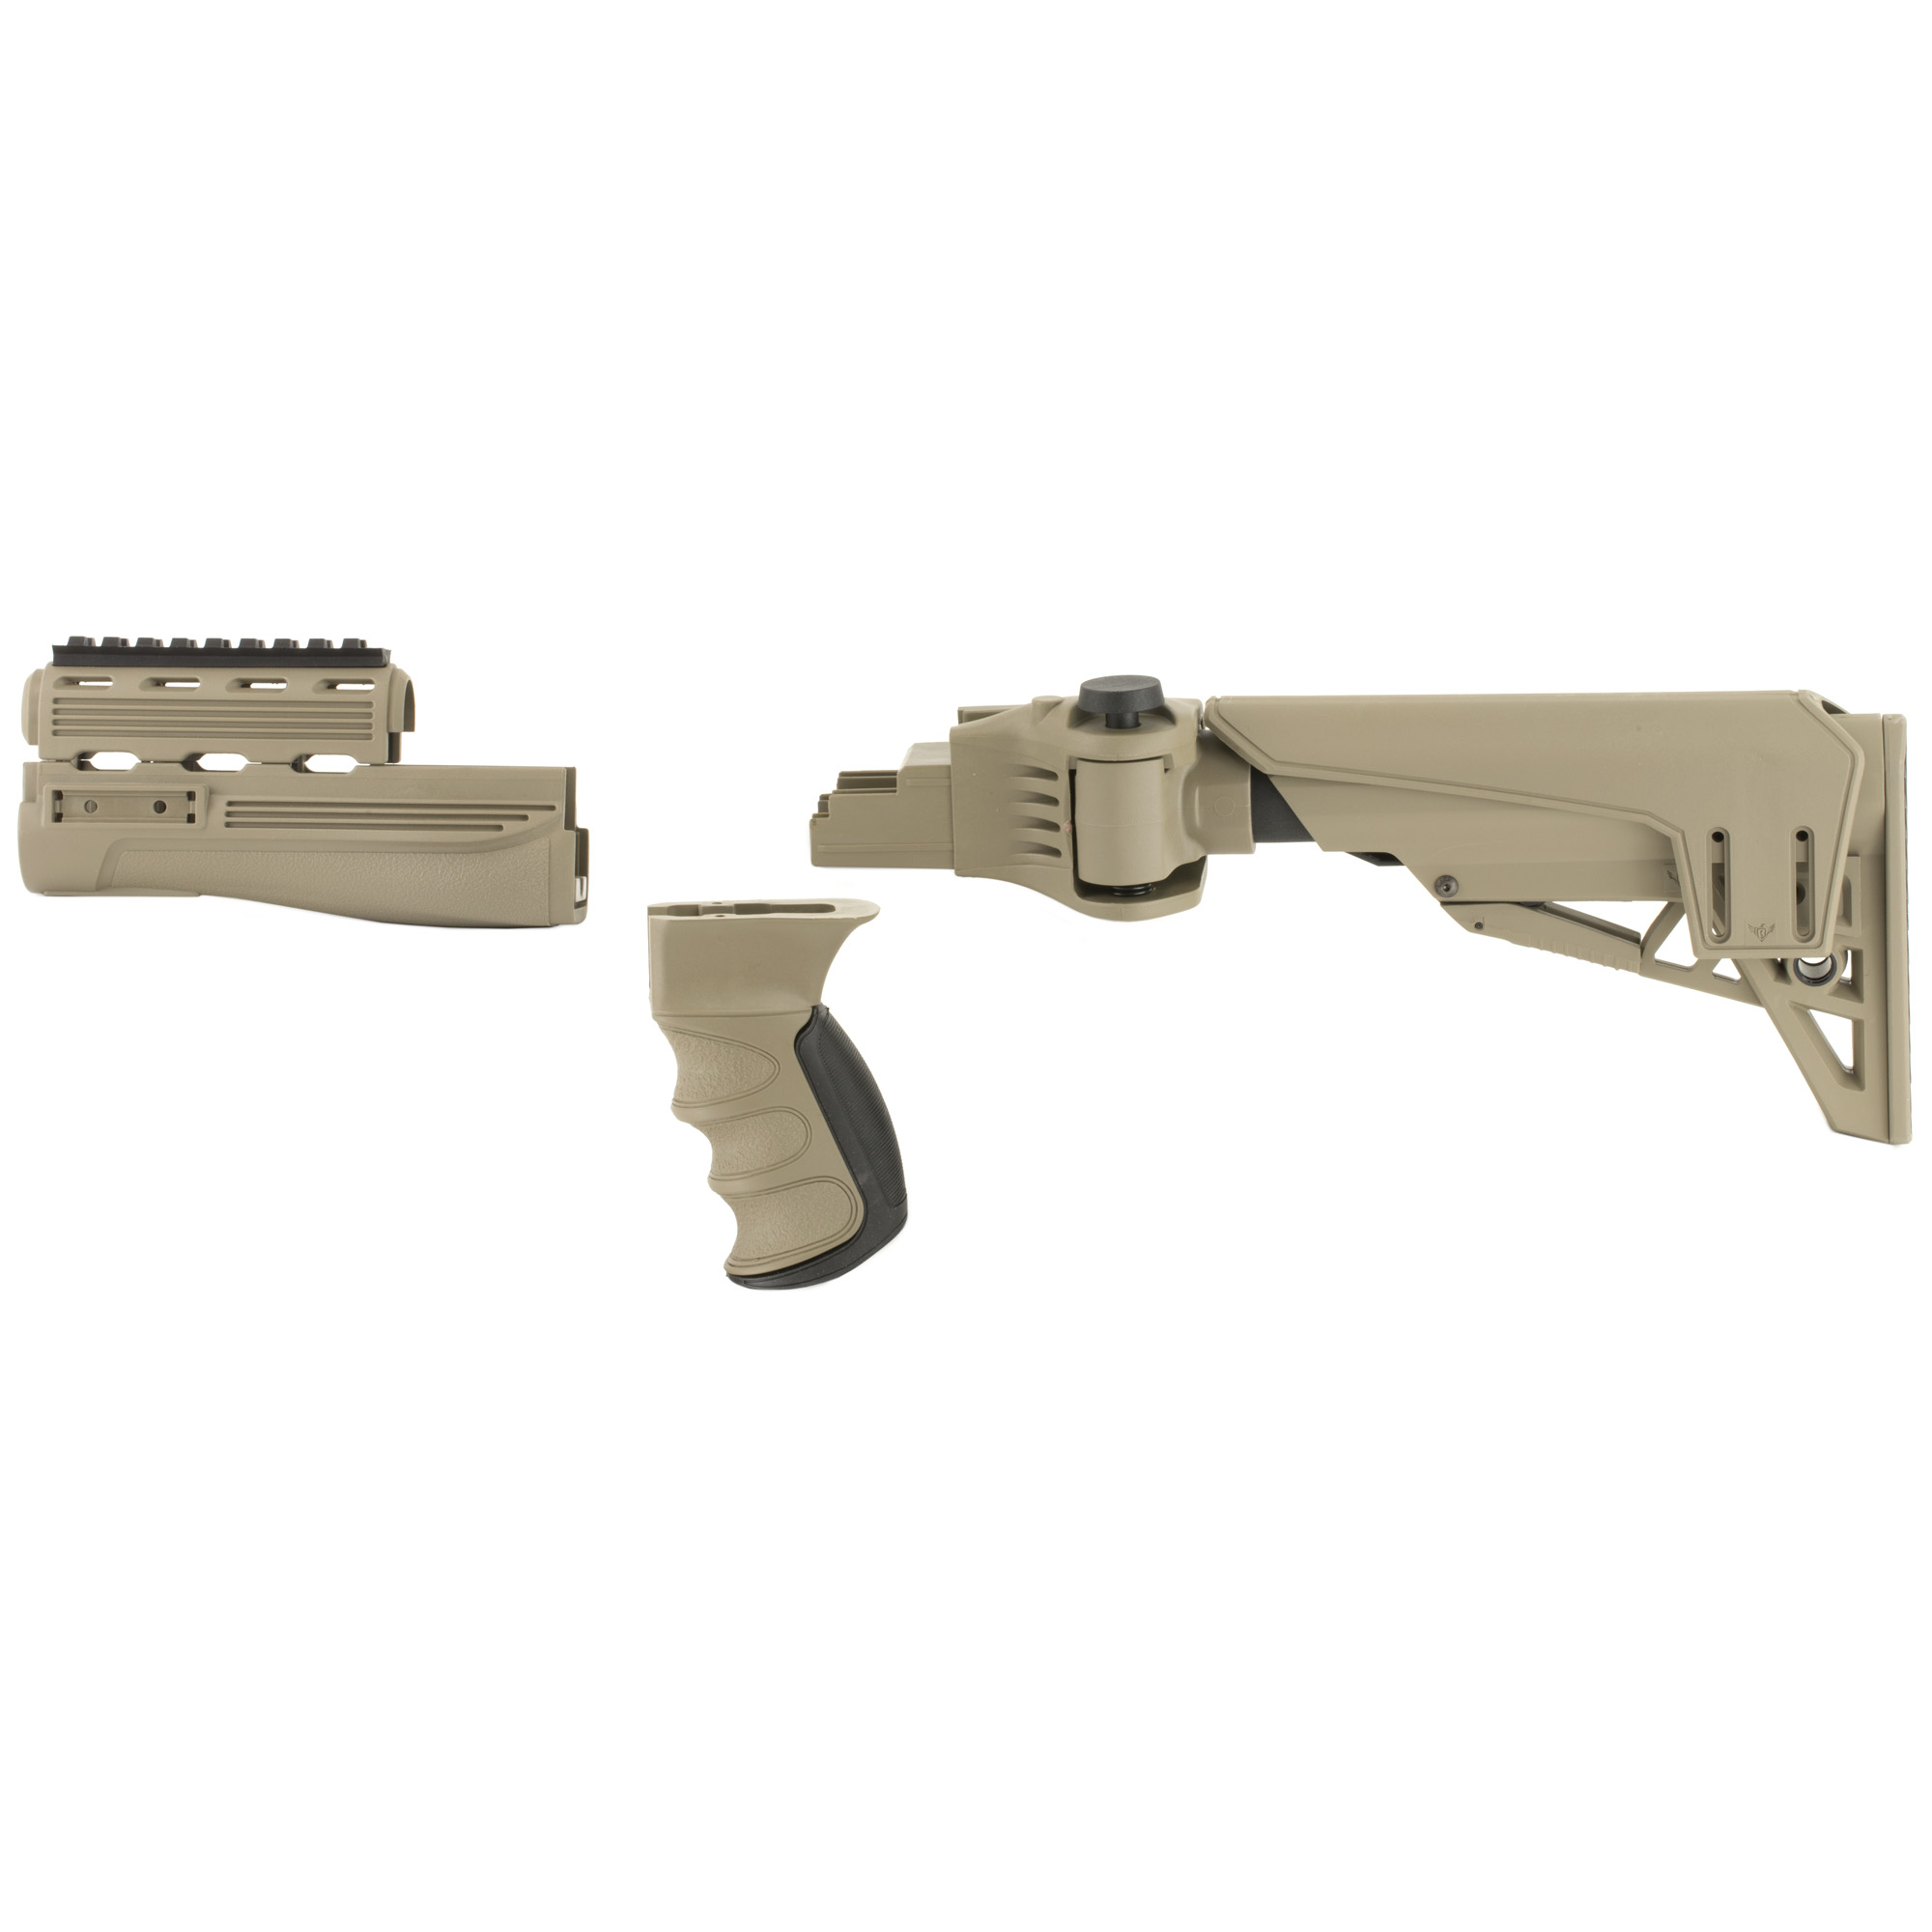 """The Advanced Technology Int. Strike force AK-47 Package is a six-position adjustable side-folding TactLite stock and forend package with a Scorpion Recoil System"""" ventilated handguards"""" pistol grip and adjustable cheek rest. It fits most stamped receivers but will not fit milled receivers. Will not fit the O-PAP/N-PAP M-70. (The M-70 has a stamped receiver"""" but utilizes a different principle of attaching the stock and the gas piston is longer than a standard AK.)ATI AK-47 stocks are not compatible with any AK-47 that has an under-folding stock or was originally designed to have an under-folding stock like the NMH-90"""" etc. The TracLock System eliminates horizontal and vertical movement of the stock on the buffer tube and provides smooth secure stock adjustments. It has a dual sided QD attachment point and a removable/adjustable cheek rest system that has an elongated design to fit all users. Includes a short cheek rest with 1/2"""" of adjustment. There are four forward Picatinny Rail locations- One 4"""" Picatinny Rail"""" Two 2"""" Picatinny Rails and One 2"""" Picatinny Rail with swivel stud. There is a slot for a tactical sling attachment"""" 3 sling swivel studs and includes a steel t-nut and bolt. Manufactured in the USA."""